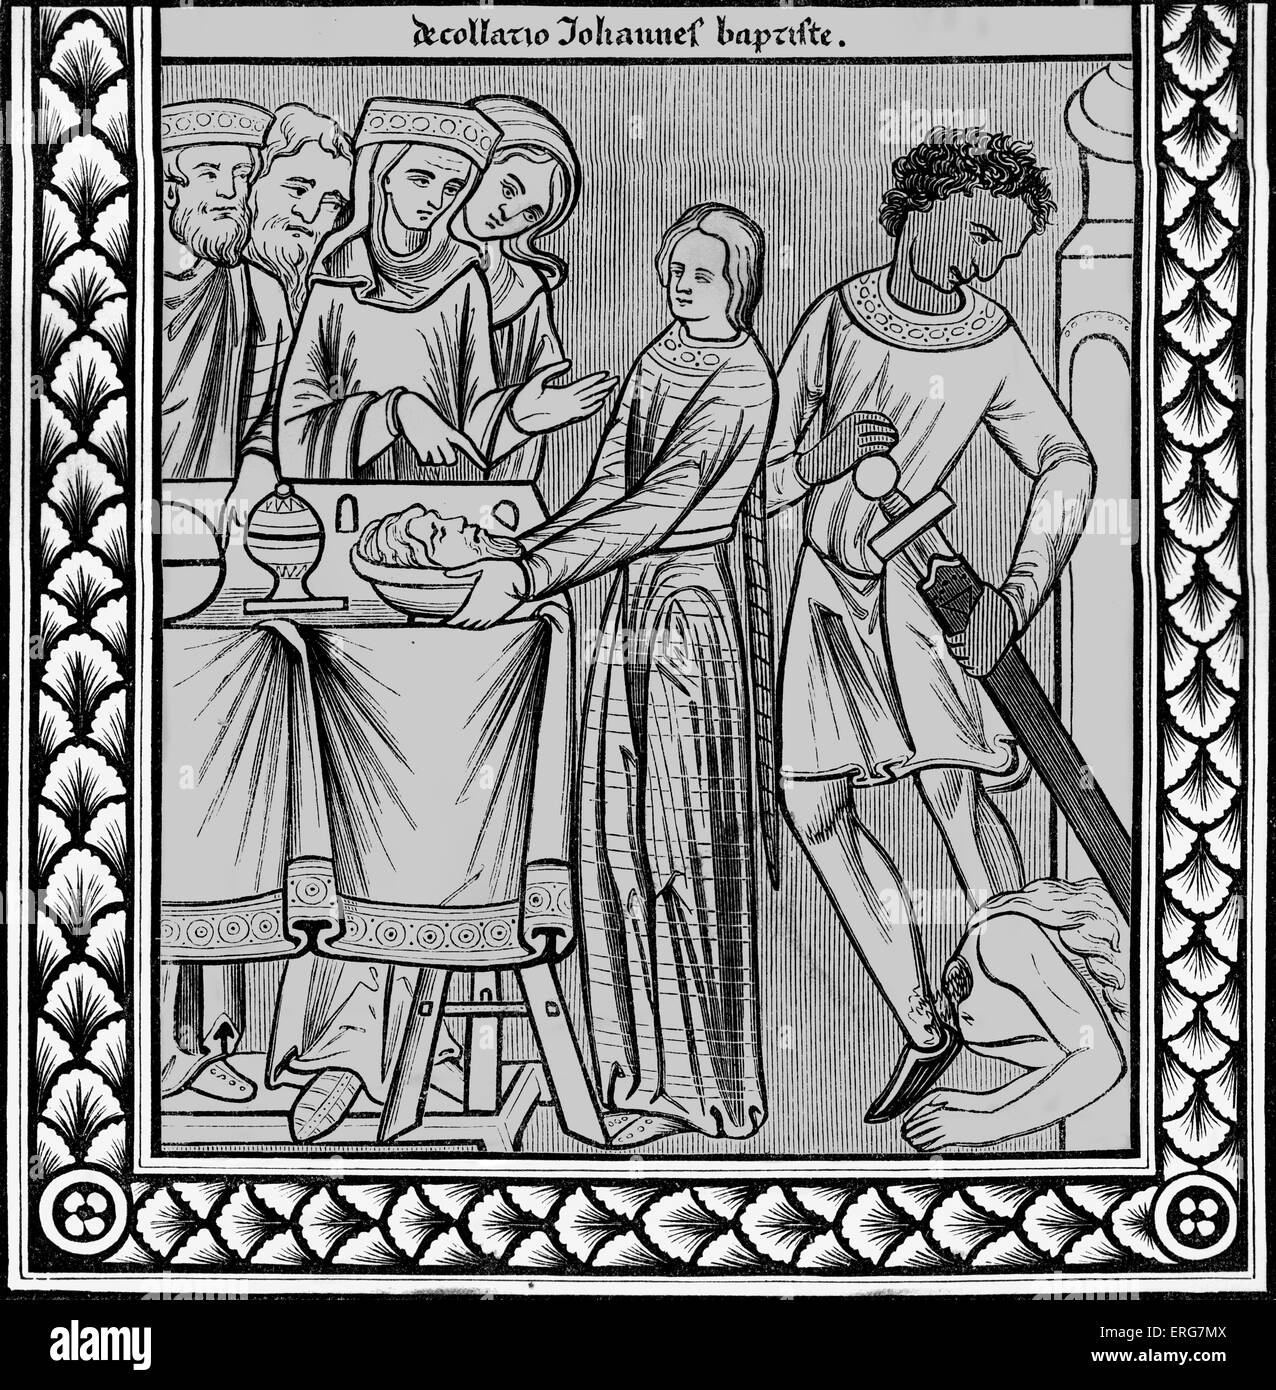 Decapitation of John the Baptist, reproduced from the thirteenth century miniature in the Psalm book of St Louis. - Stock Image